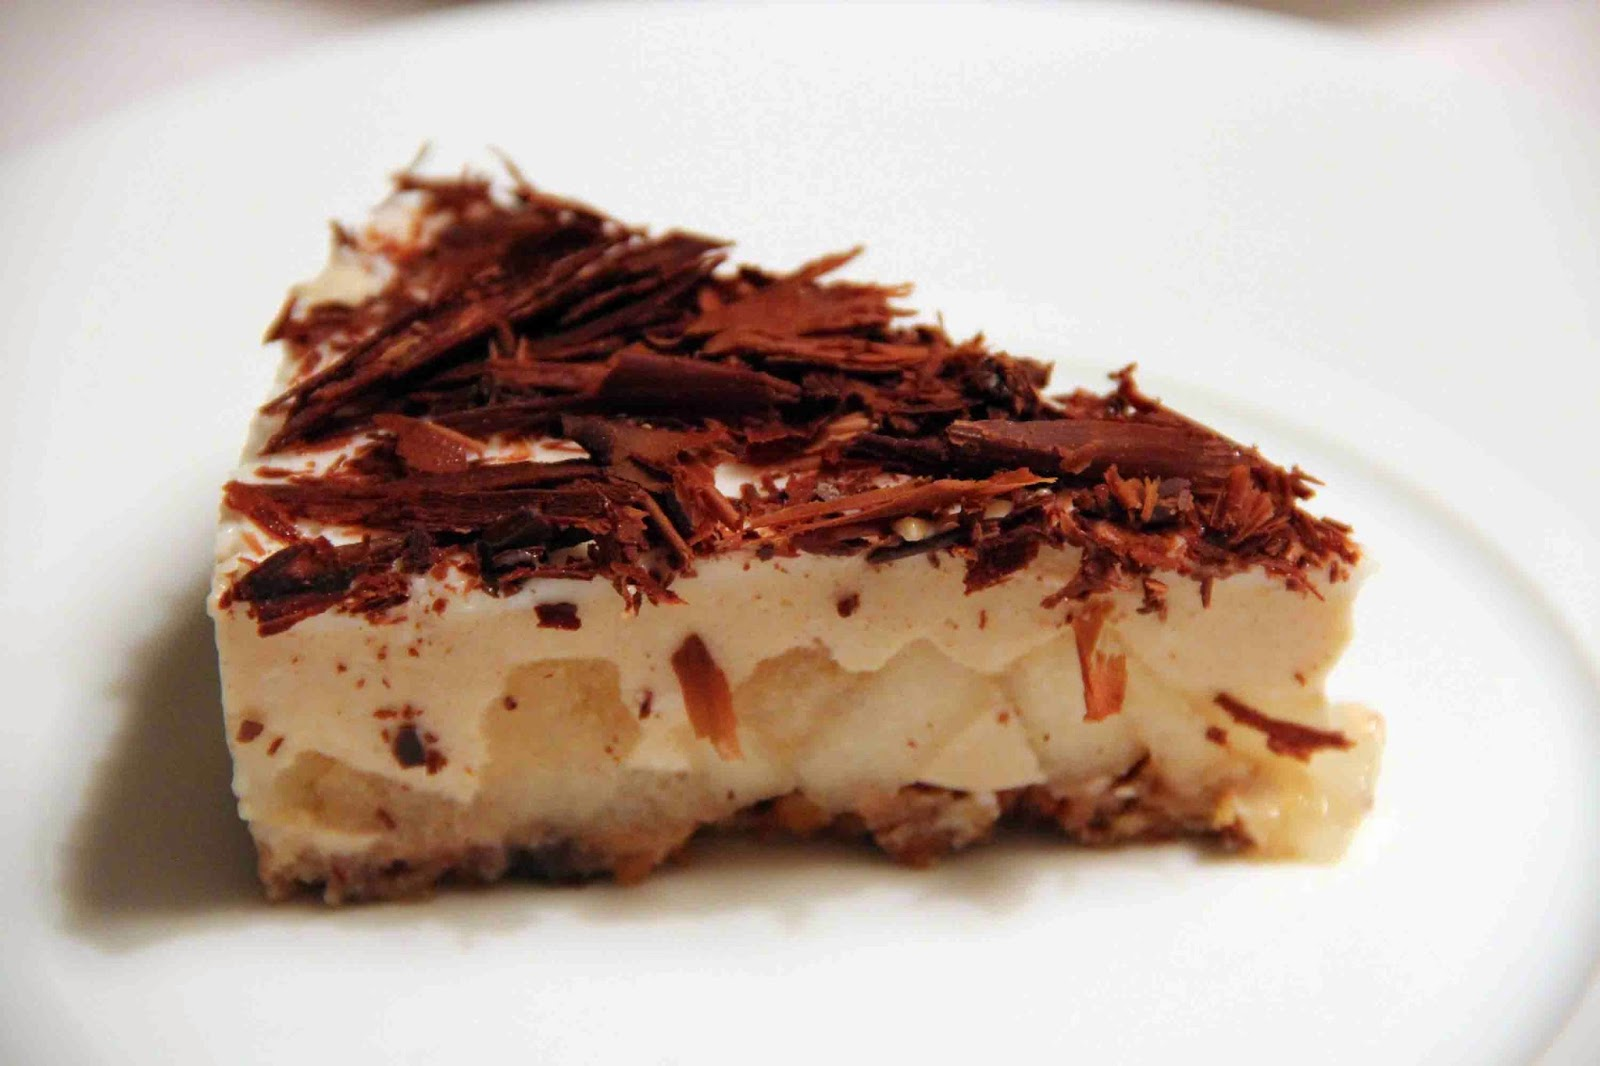 http://camilleenchocolat.blogspot.fr/2015/01/cheesecake-aux-poires-et-cannelle.html